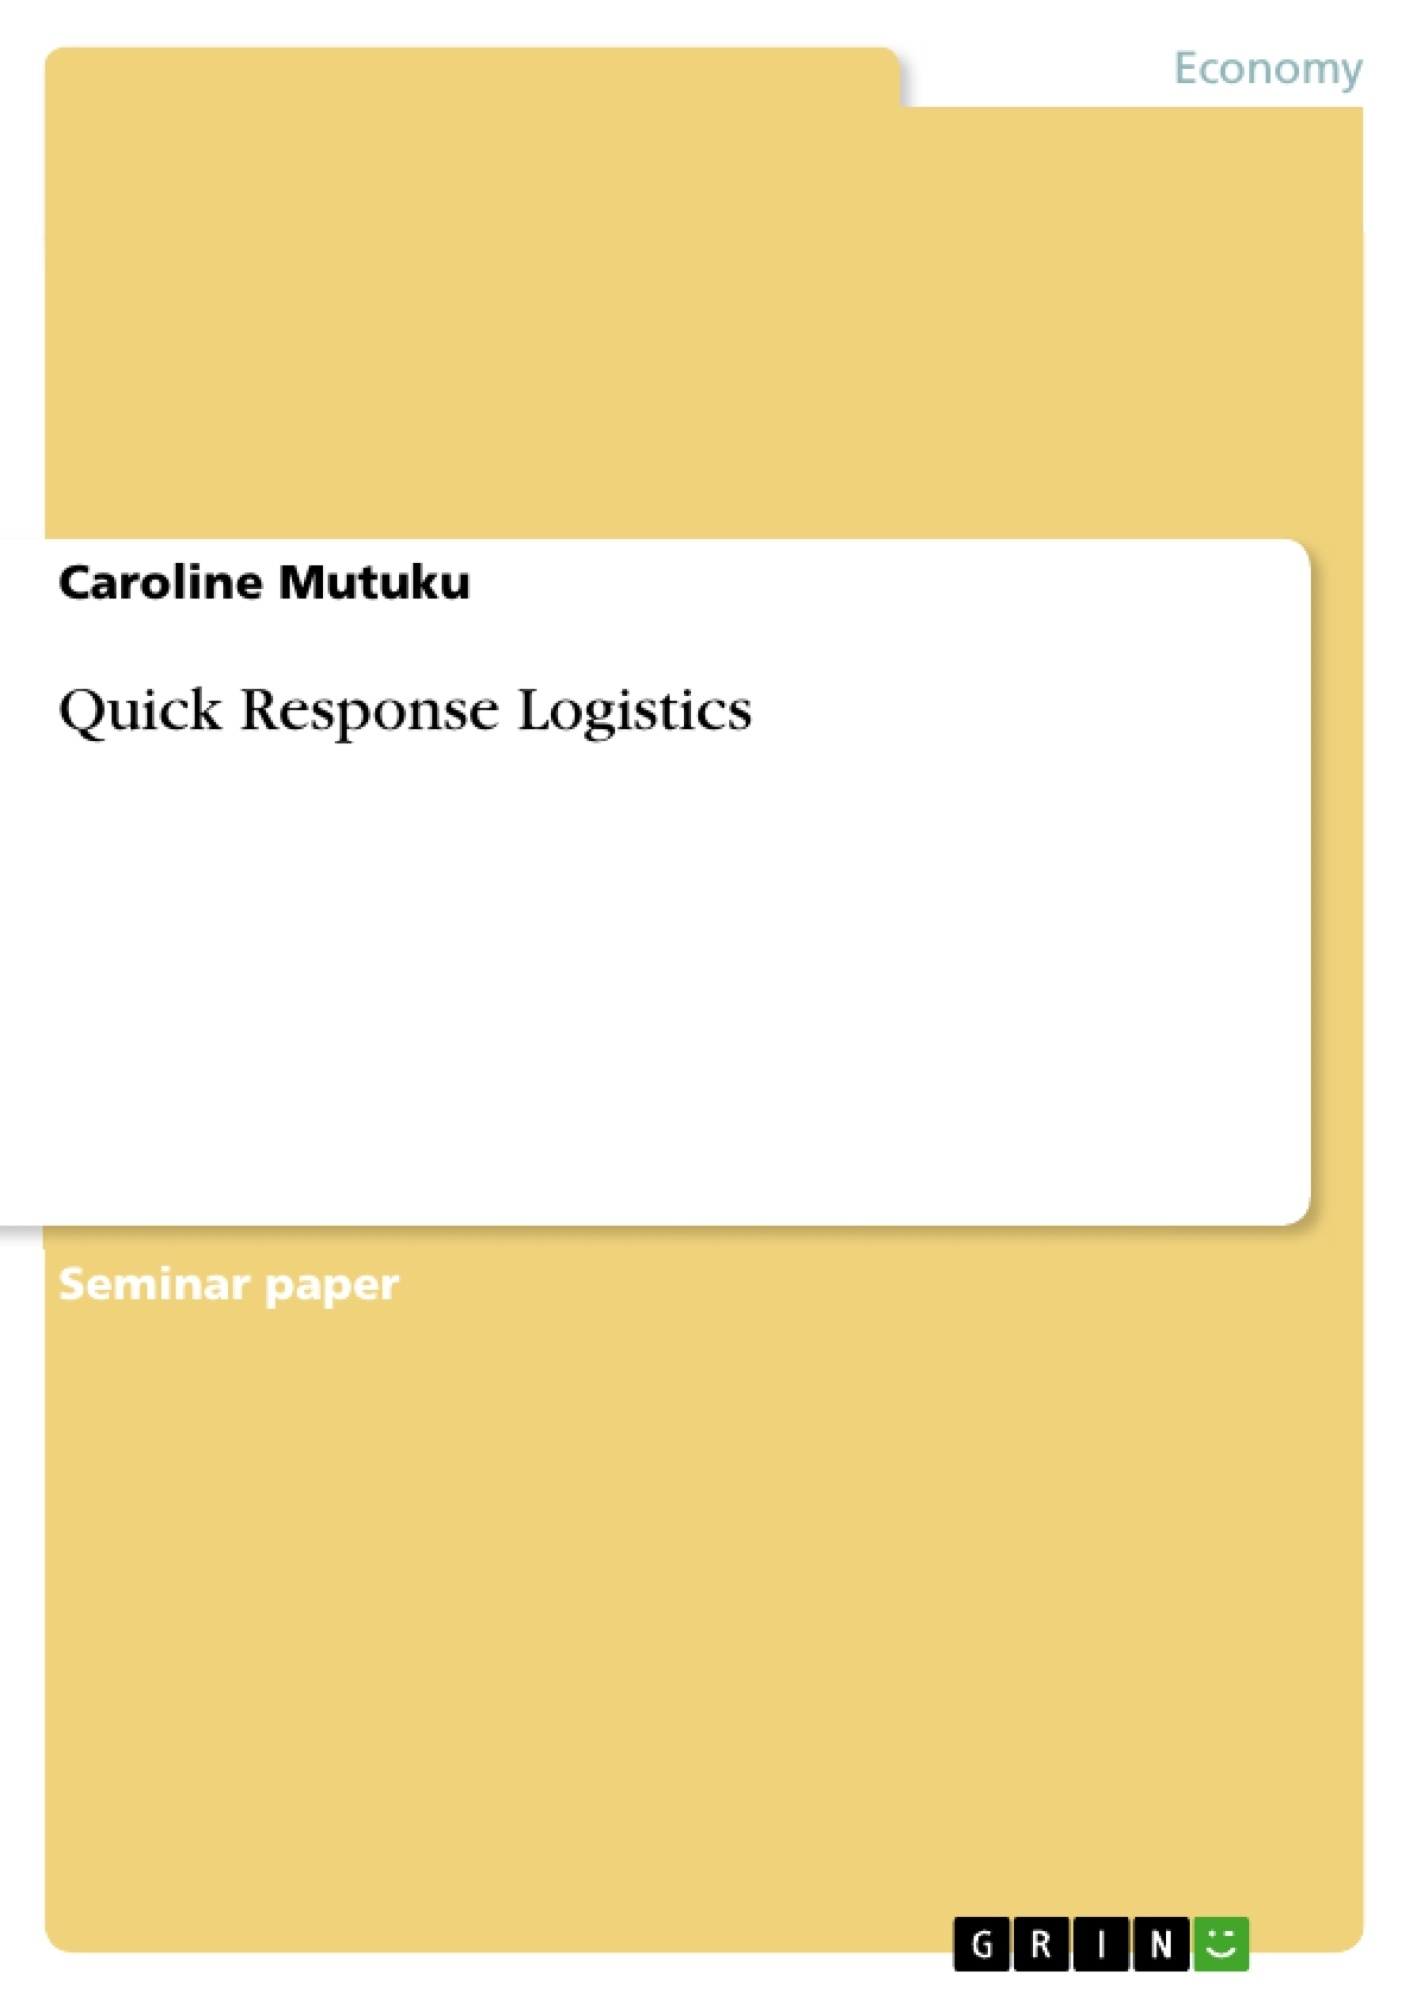 GRIN - Quick Response Logistics